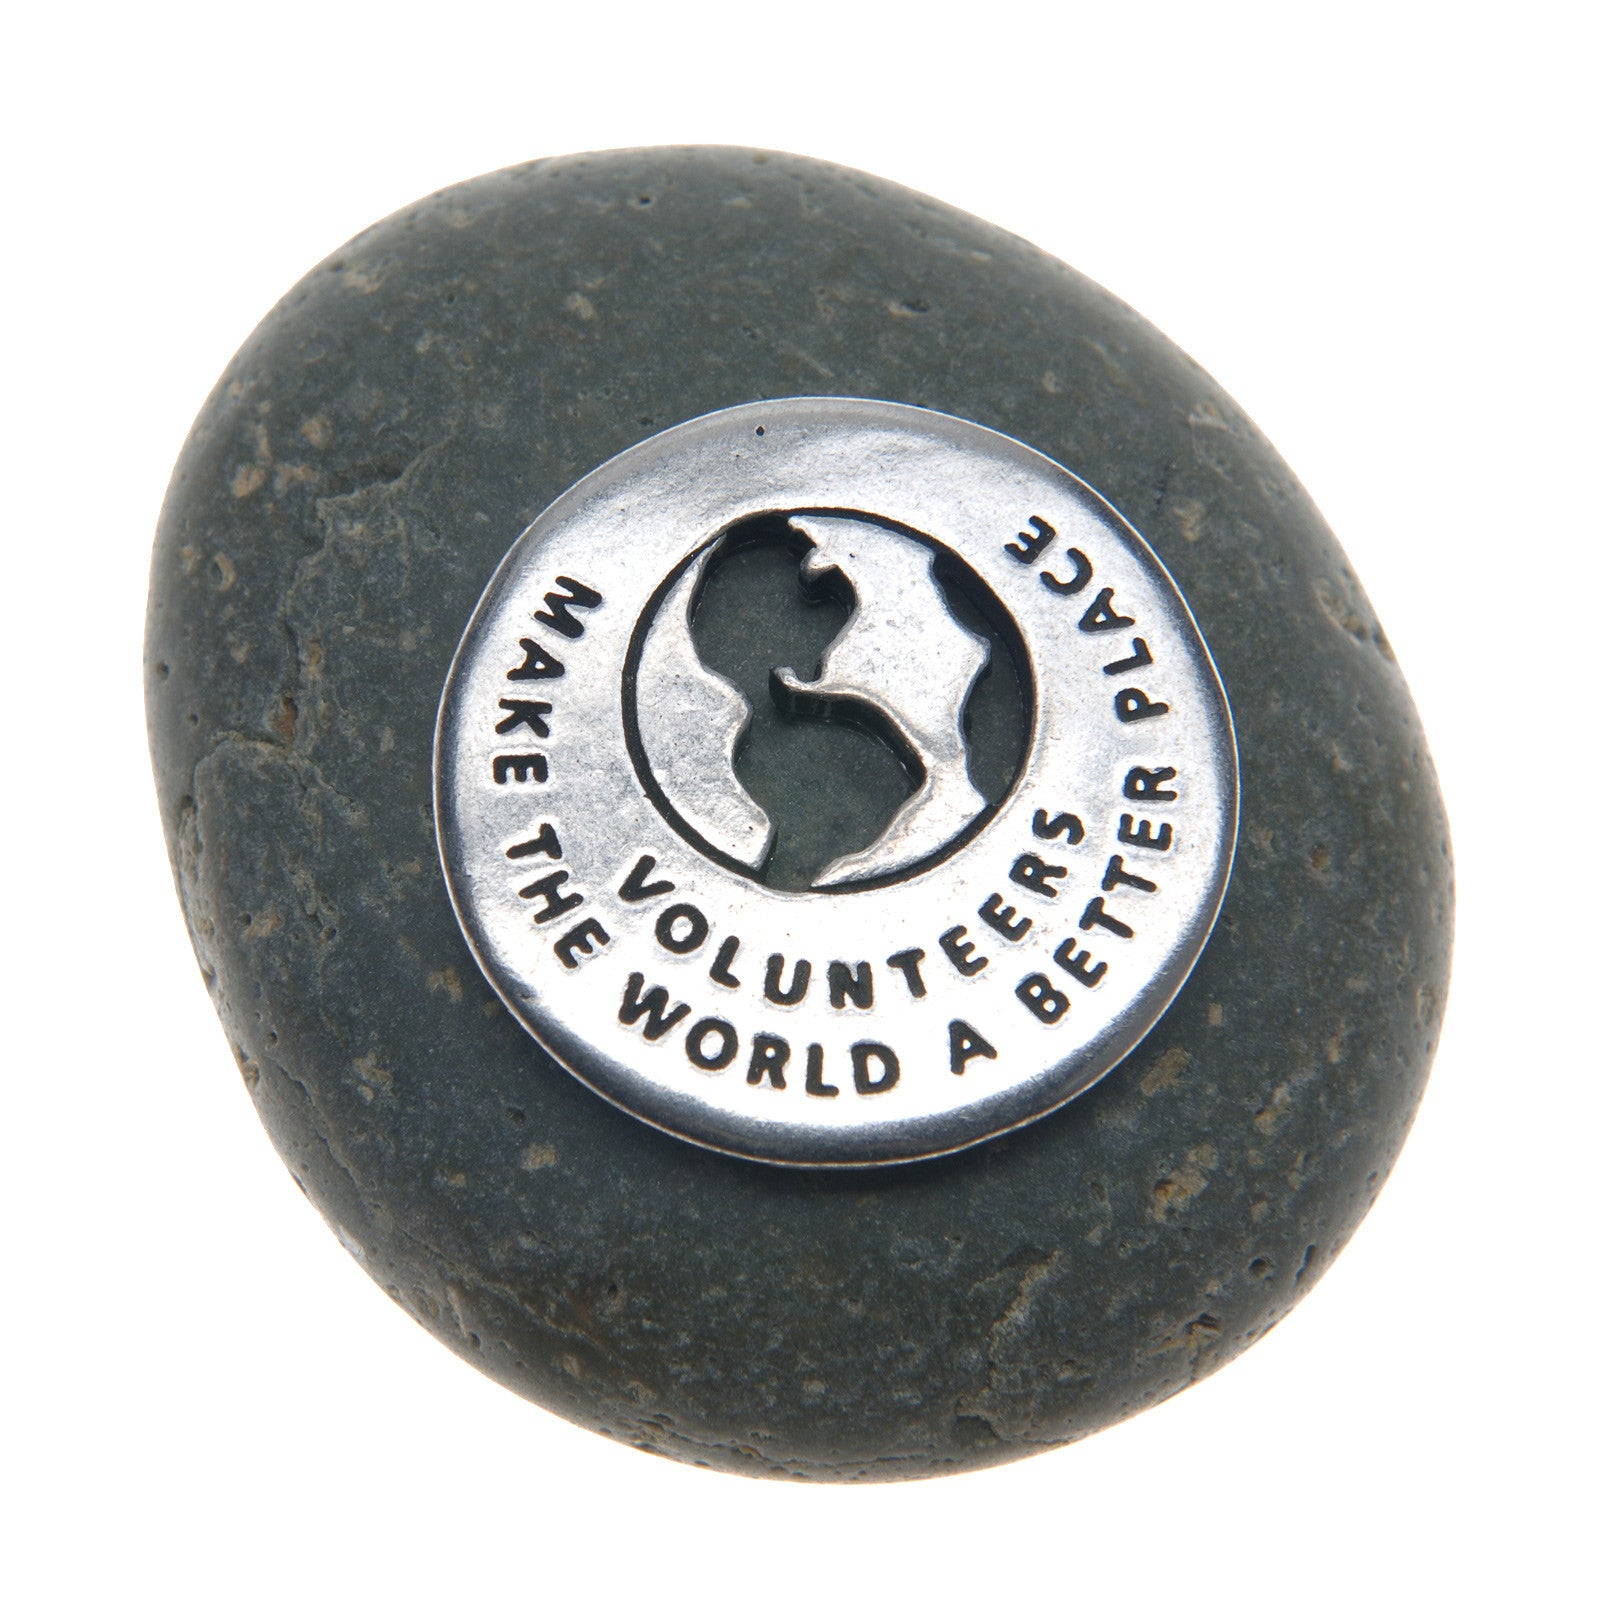 Volunteers Make The World A Better Place Volunteer Rock - Whitney Howard Designs